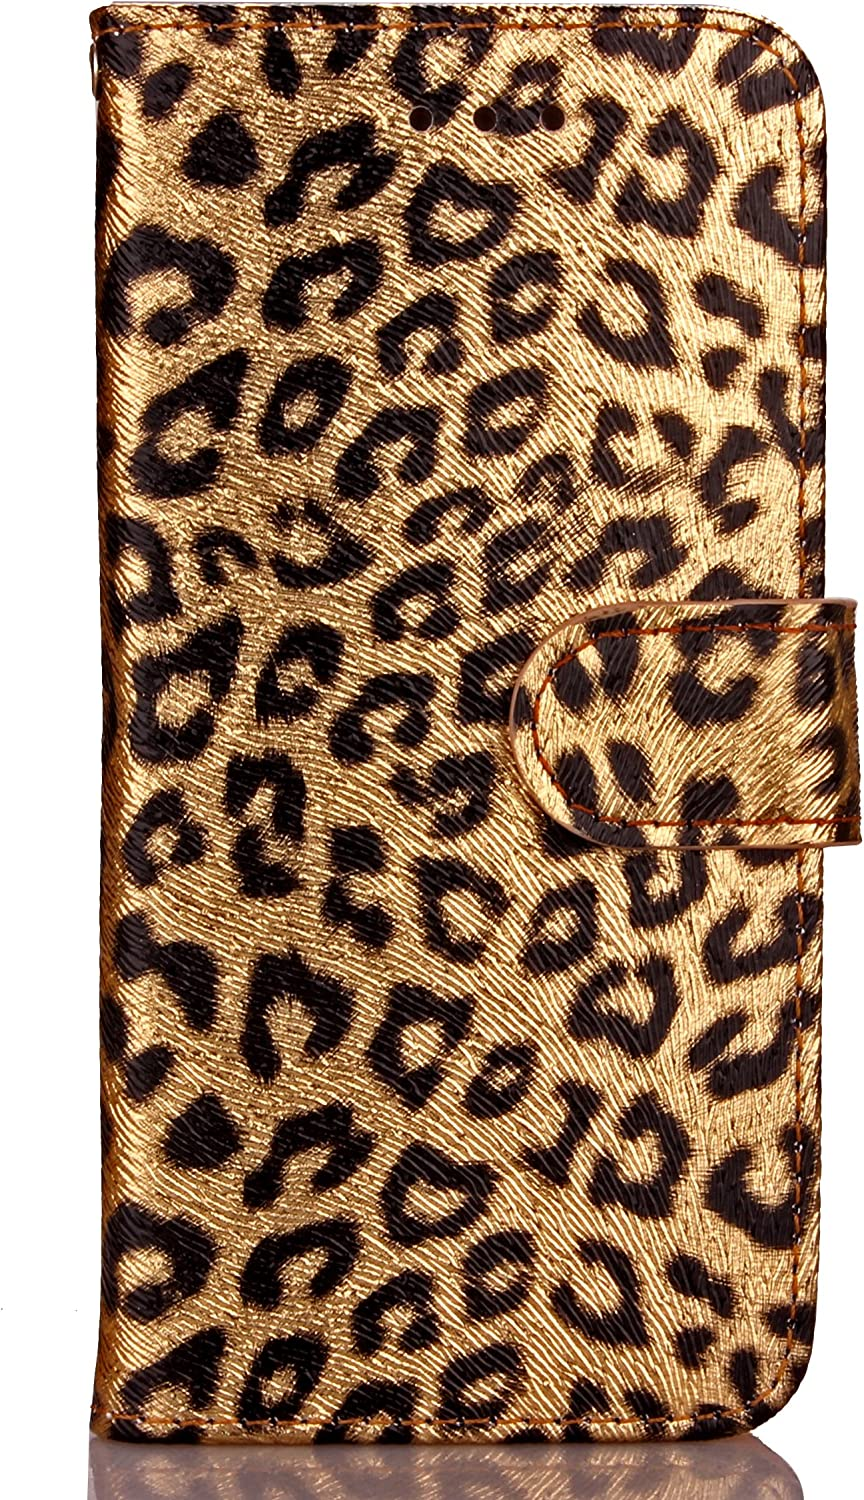 Iphone 6 plus 6s plus phone case,PU Leather Luxury Leopard Pattern Wallet Flip Case Card Slots With Magnetic Closure Wallet Case For iPhone 6P/6SP (gold)